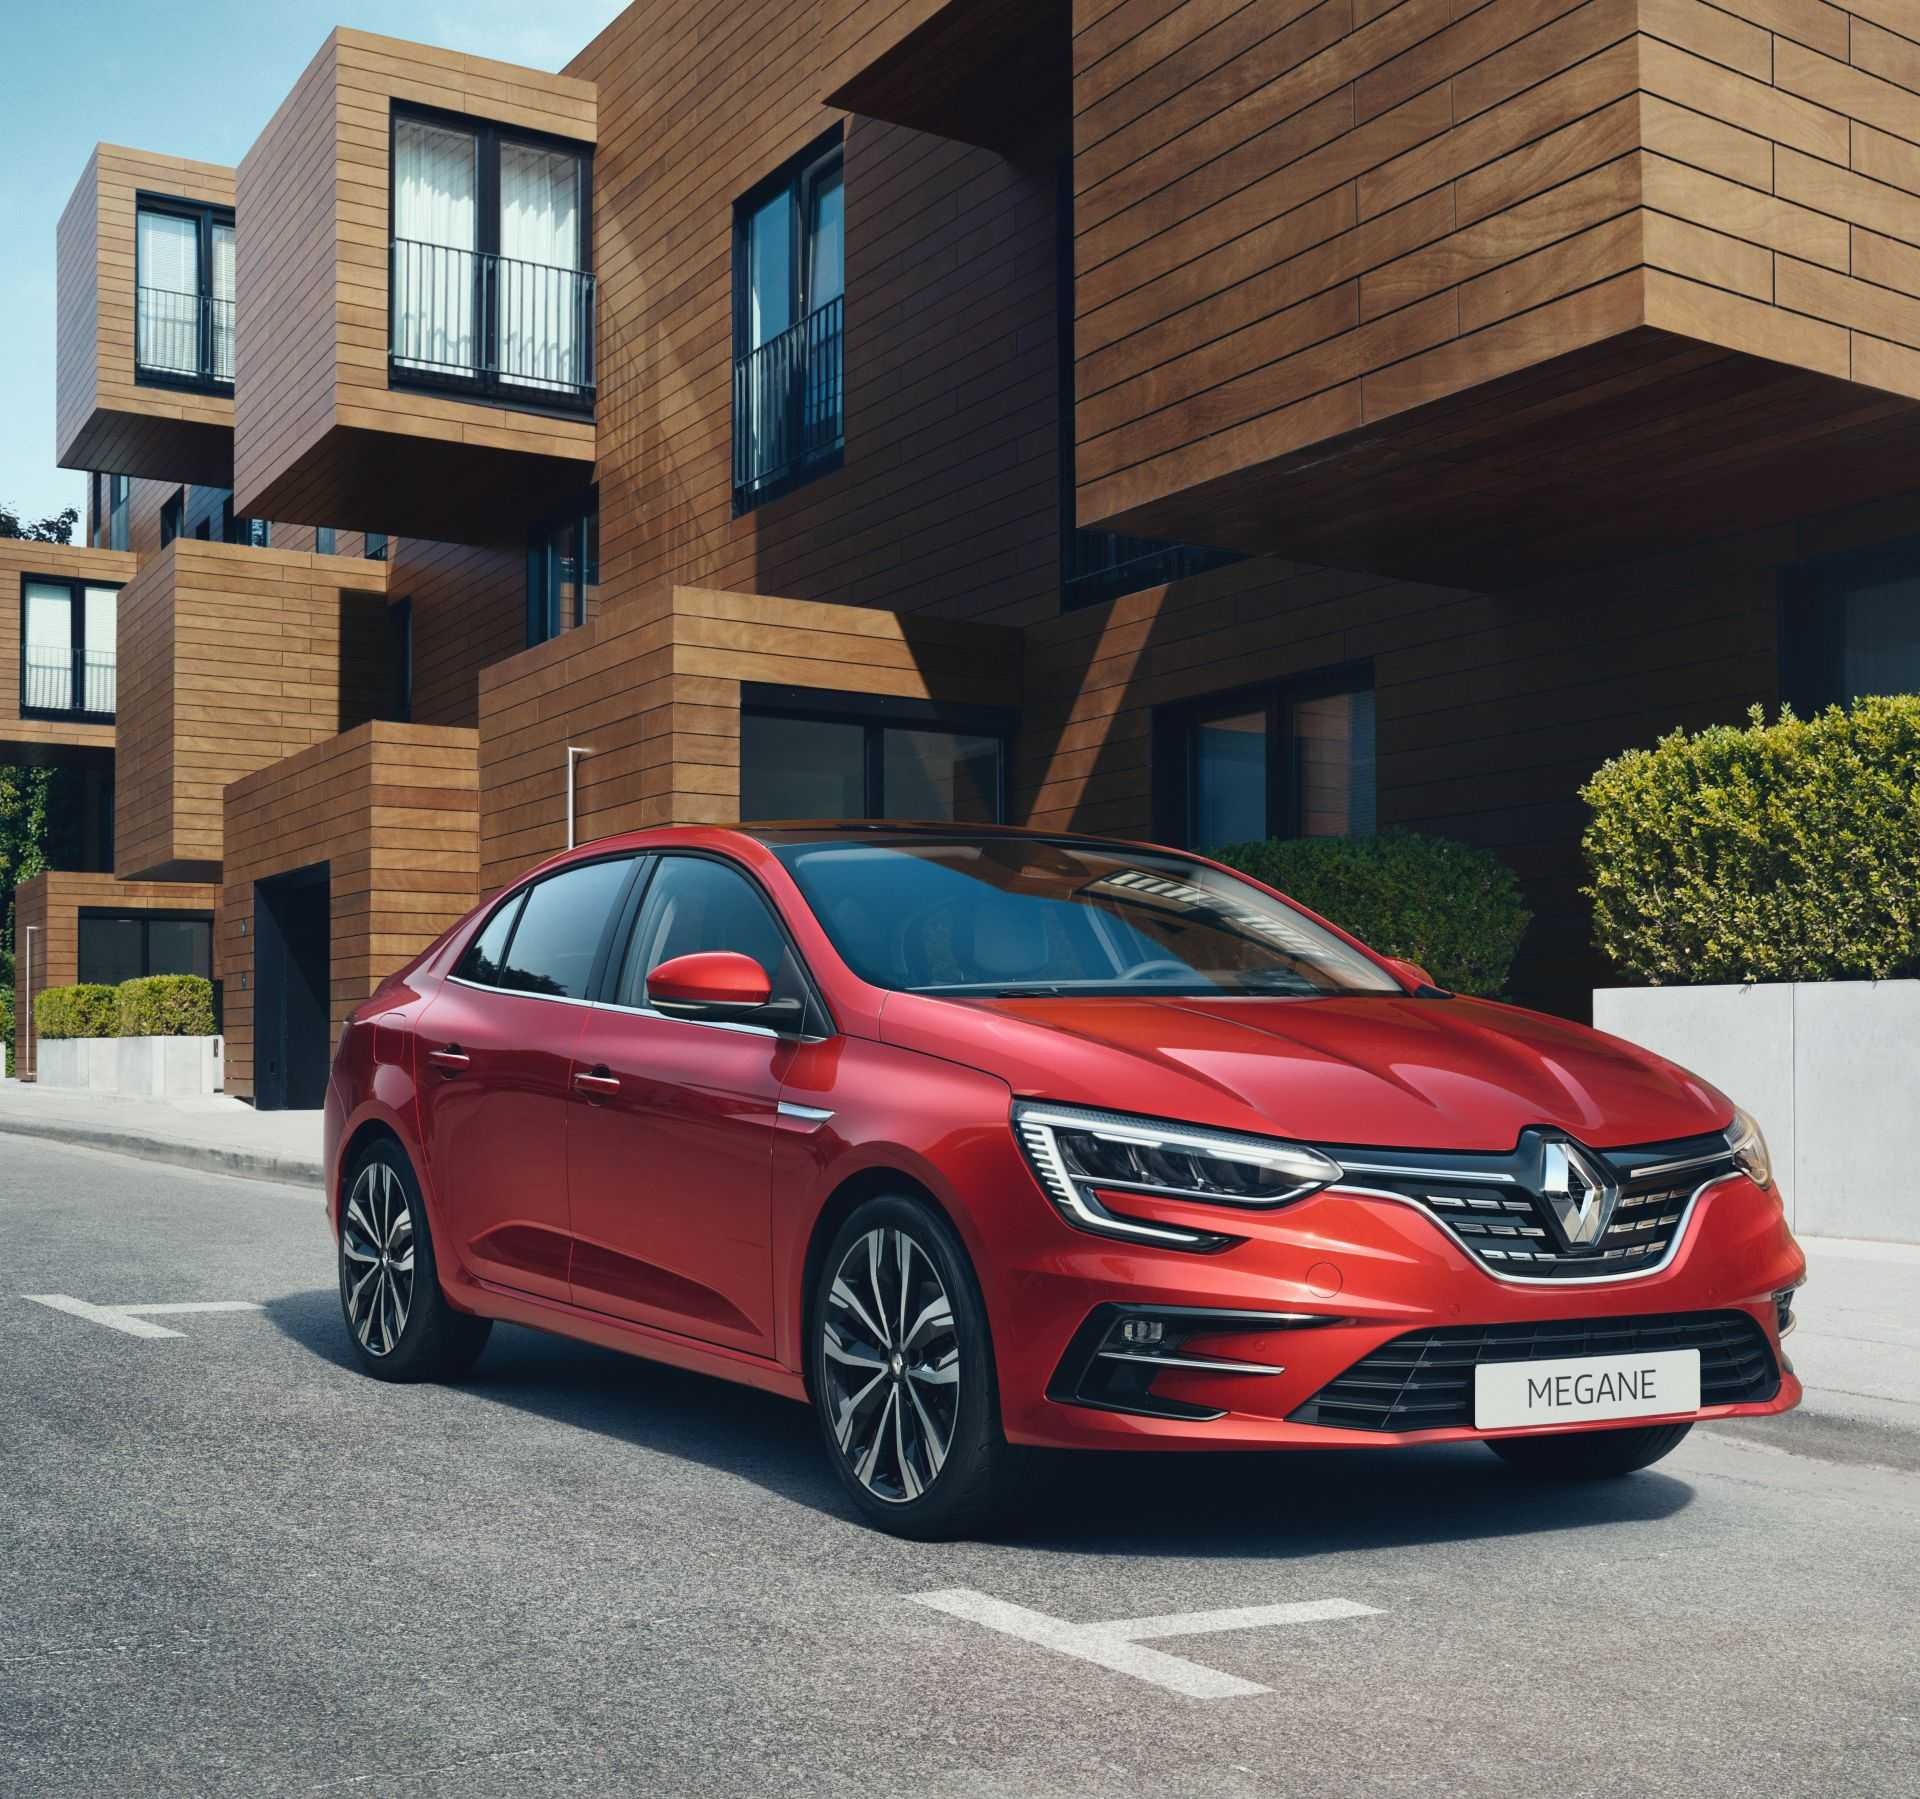 2021 Renault Megane Sedan Facelift Edition, Tech and Features to Know